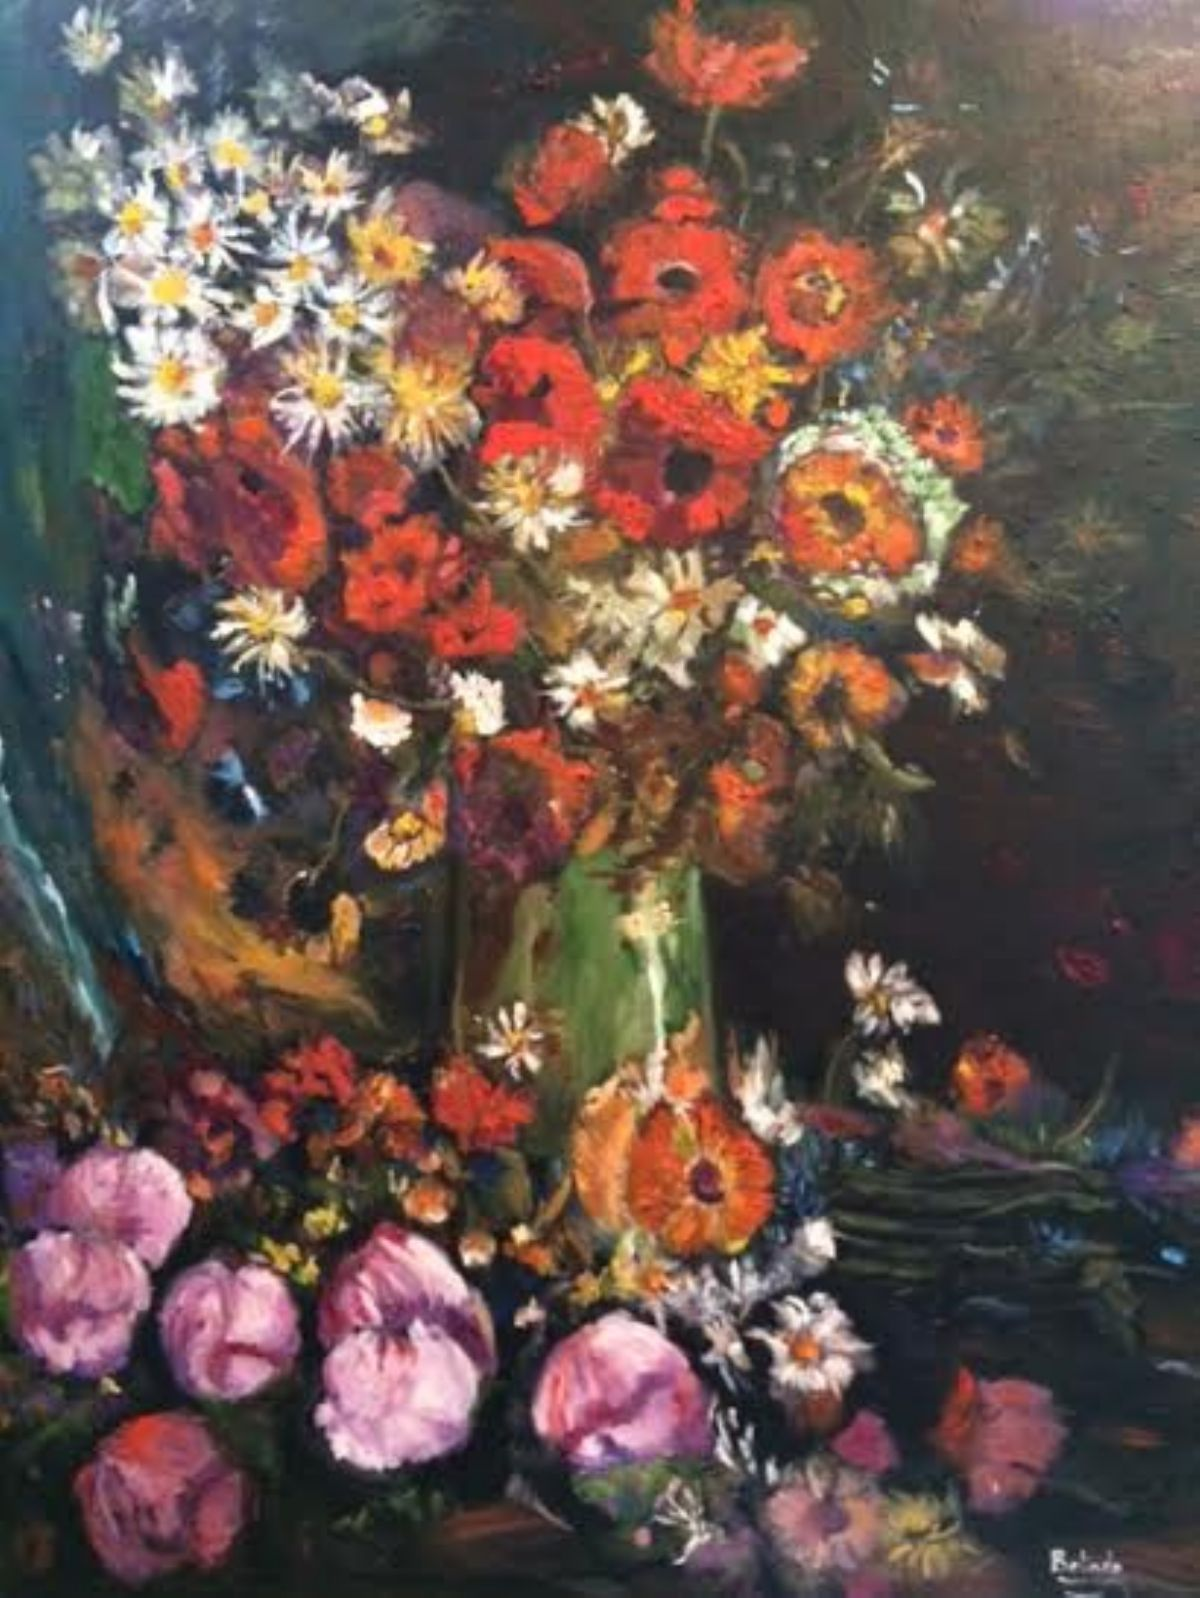 Life is Full of Colors artwork by Belinda Low - art listed for sale on Artplode